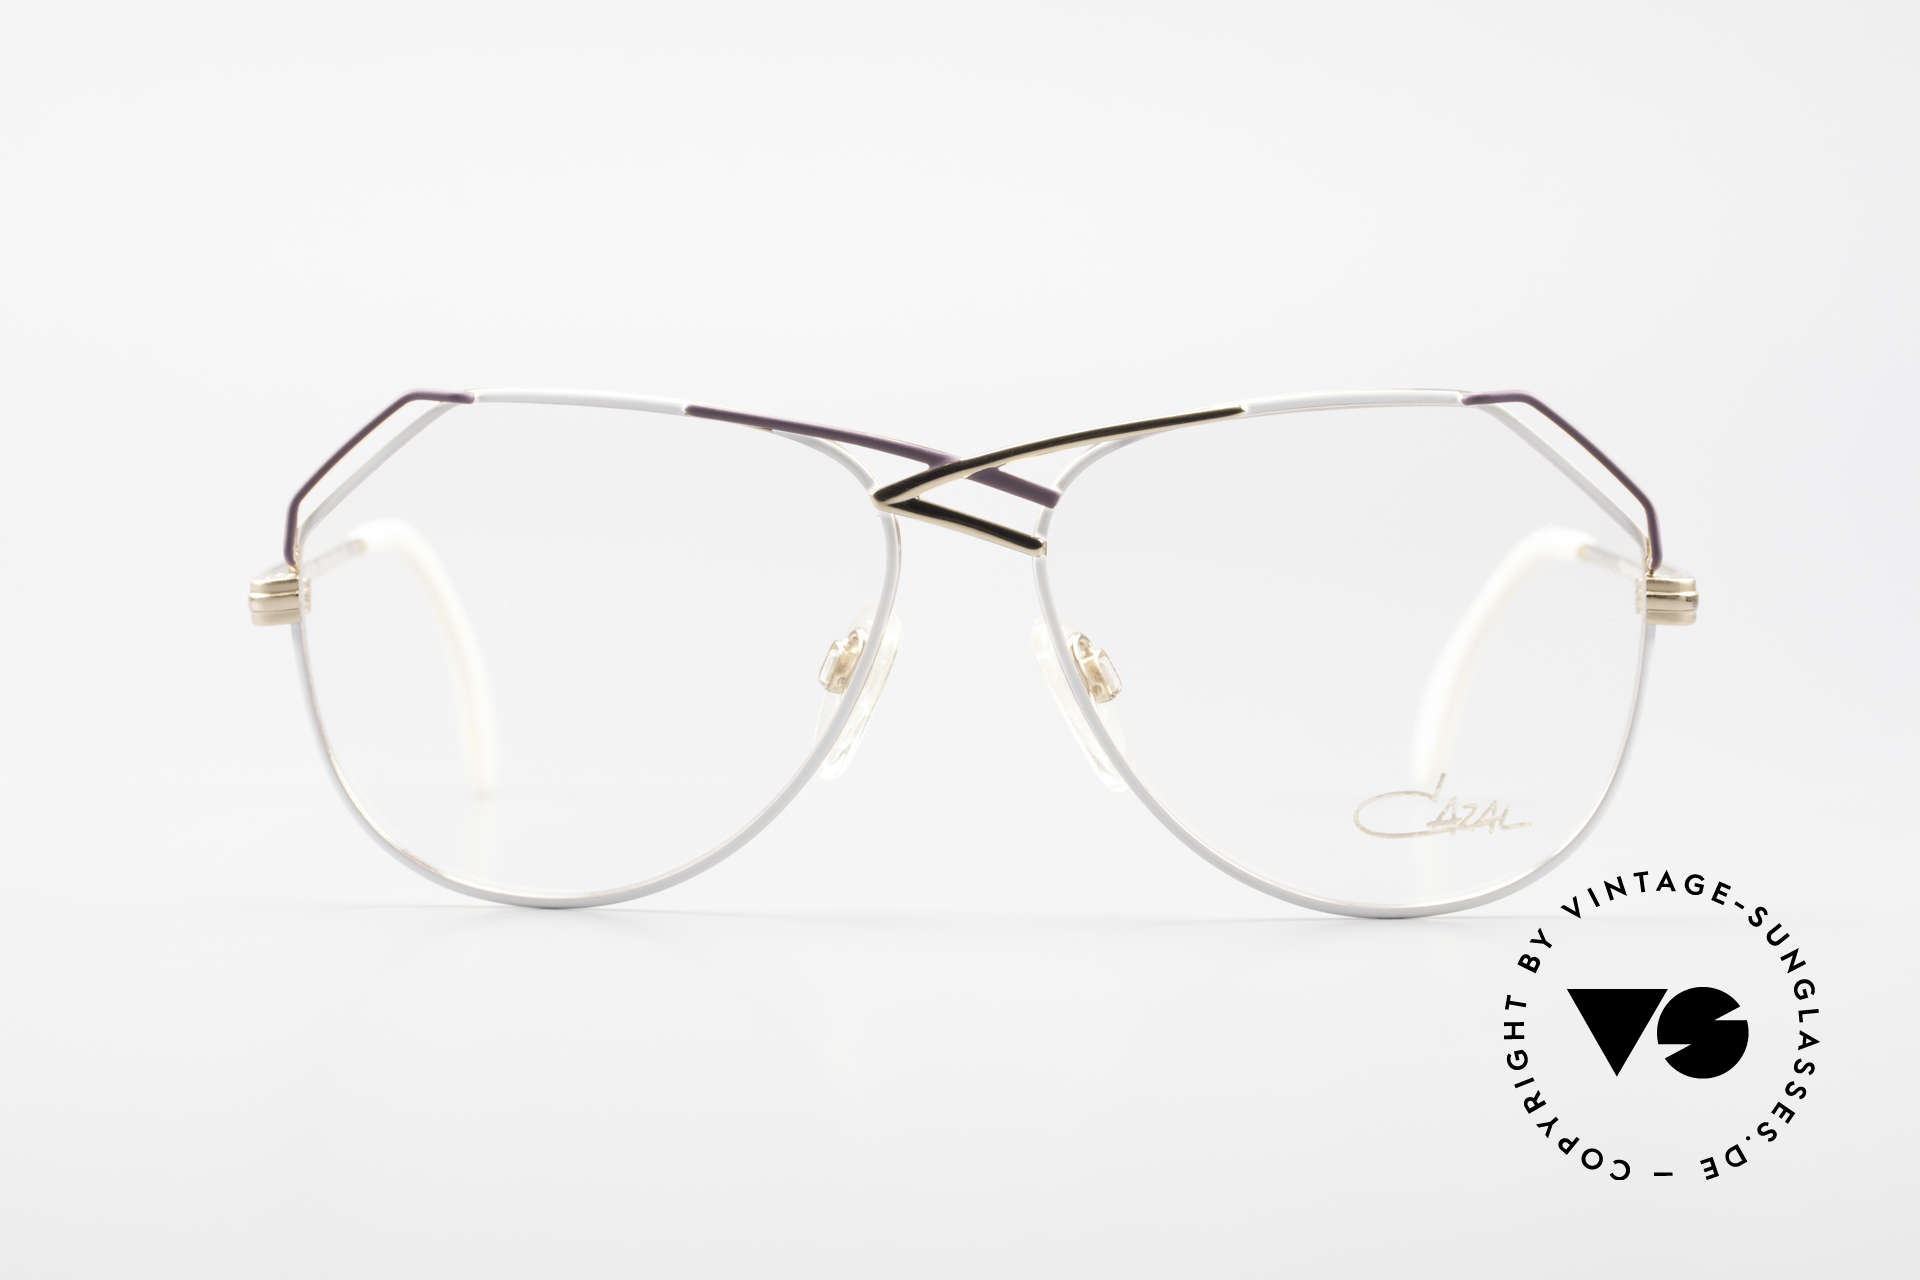 Cazal 229 West Germany Vintage Cazal, with artistic tangled bridge ('W.Germany' quality), Made for Women